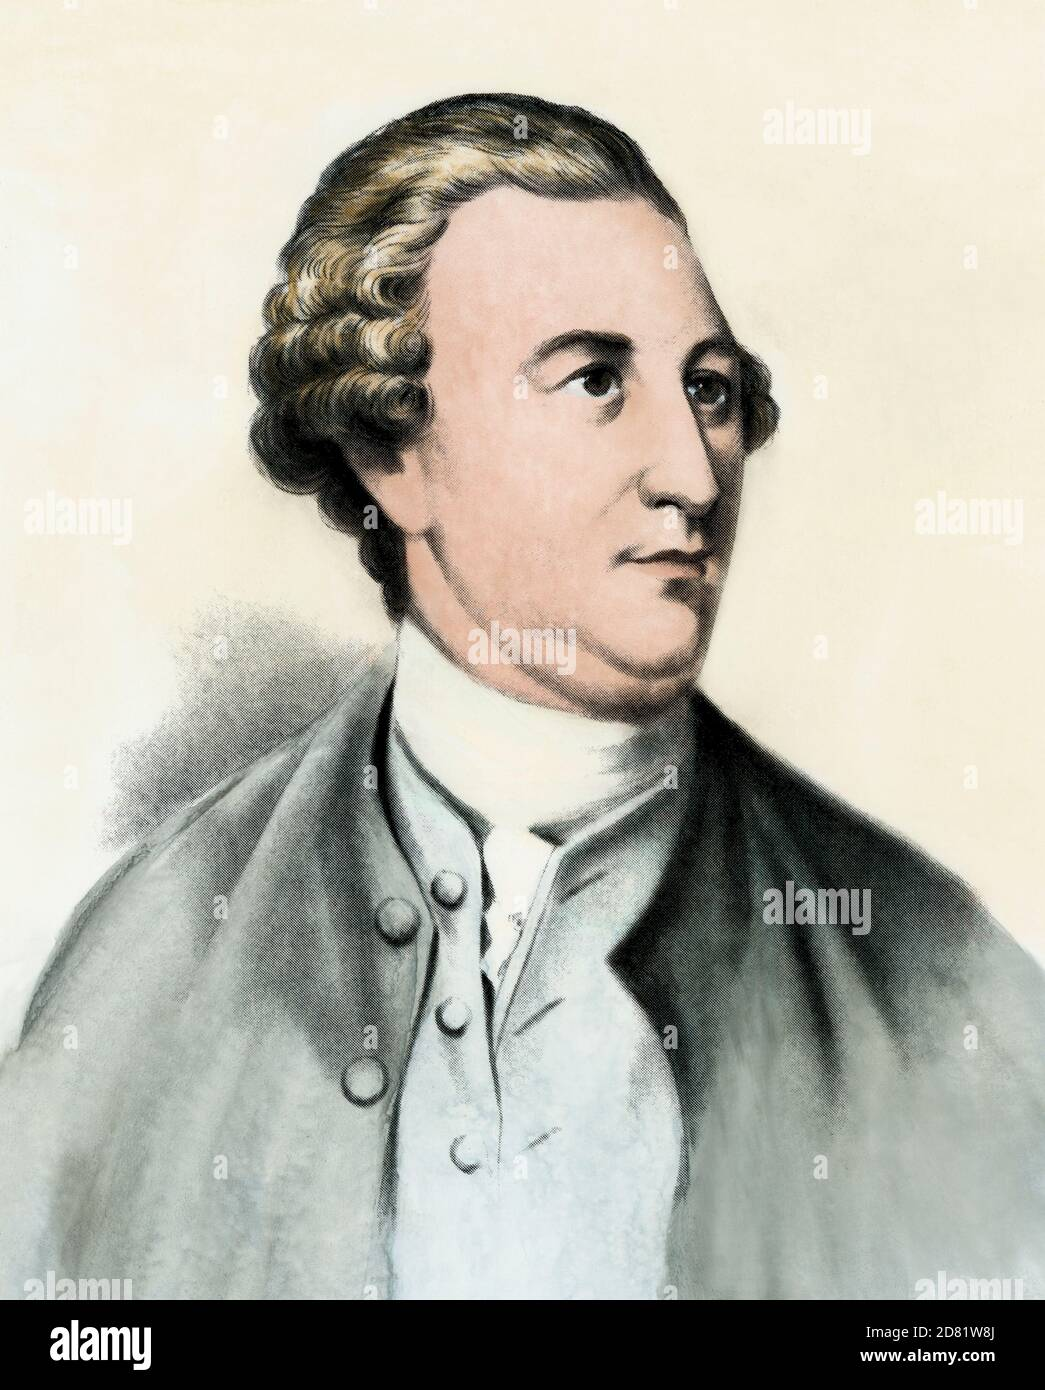 William Paca, signer of the Declaration of Independence. Hand-colored halftone Stock Photo